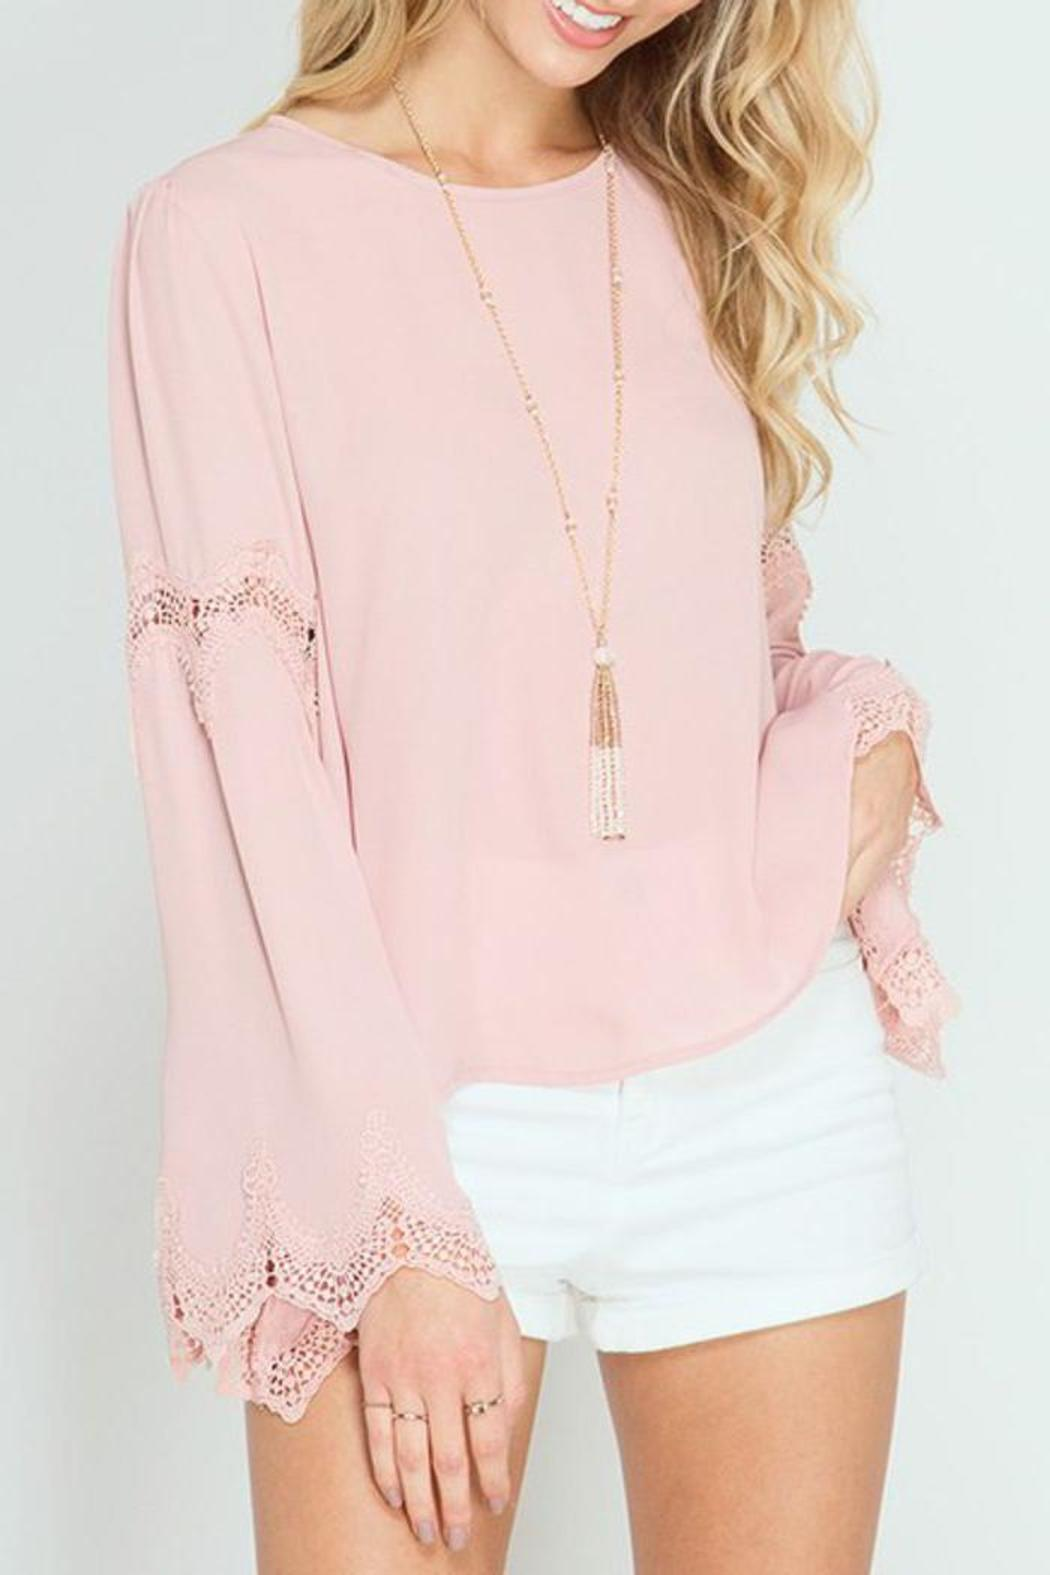 The Dressing Room Dusty Pink Blouse from California